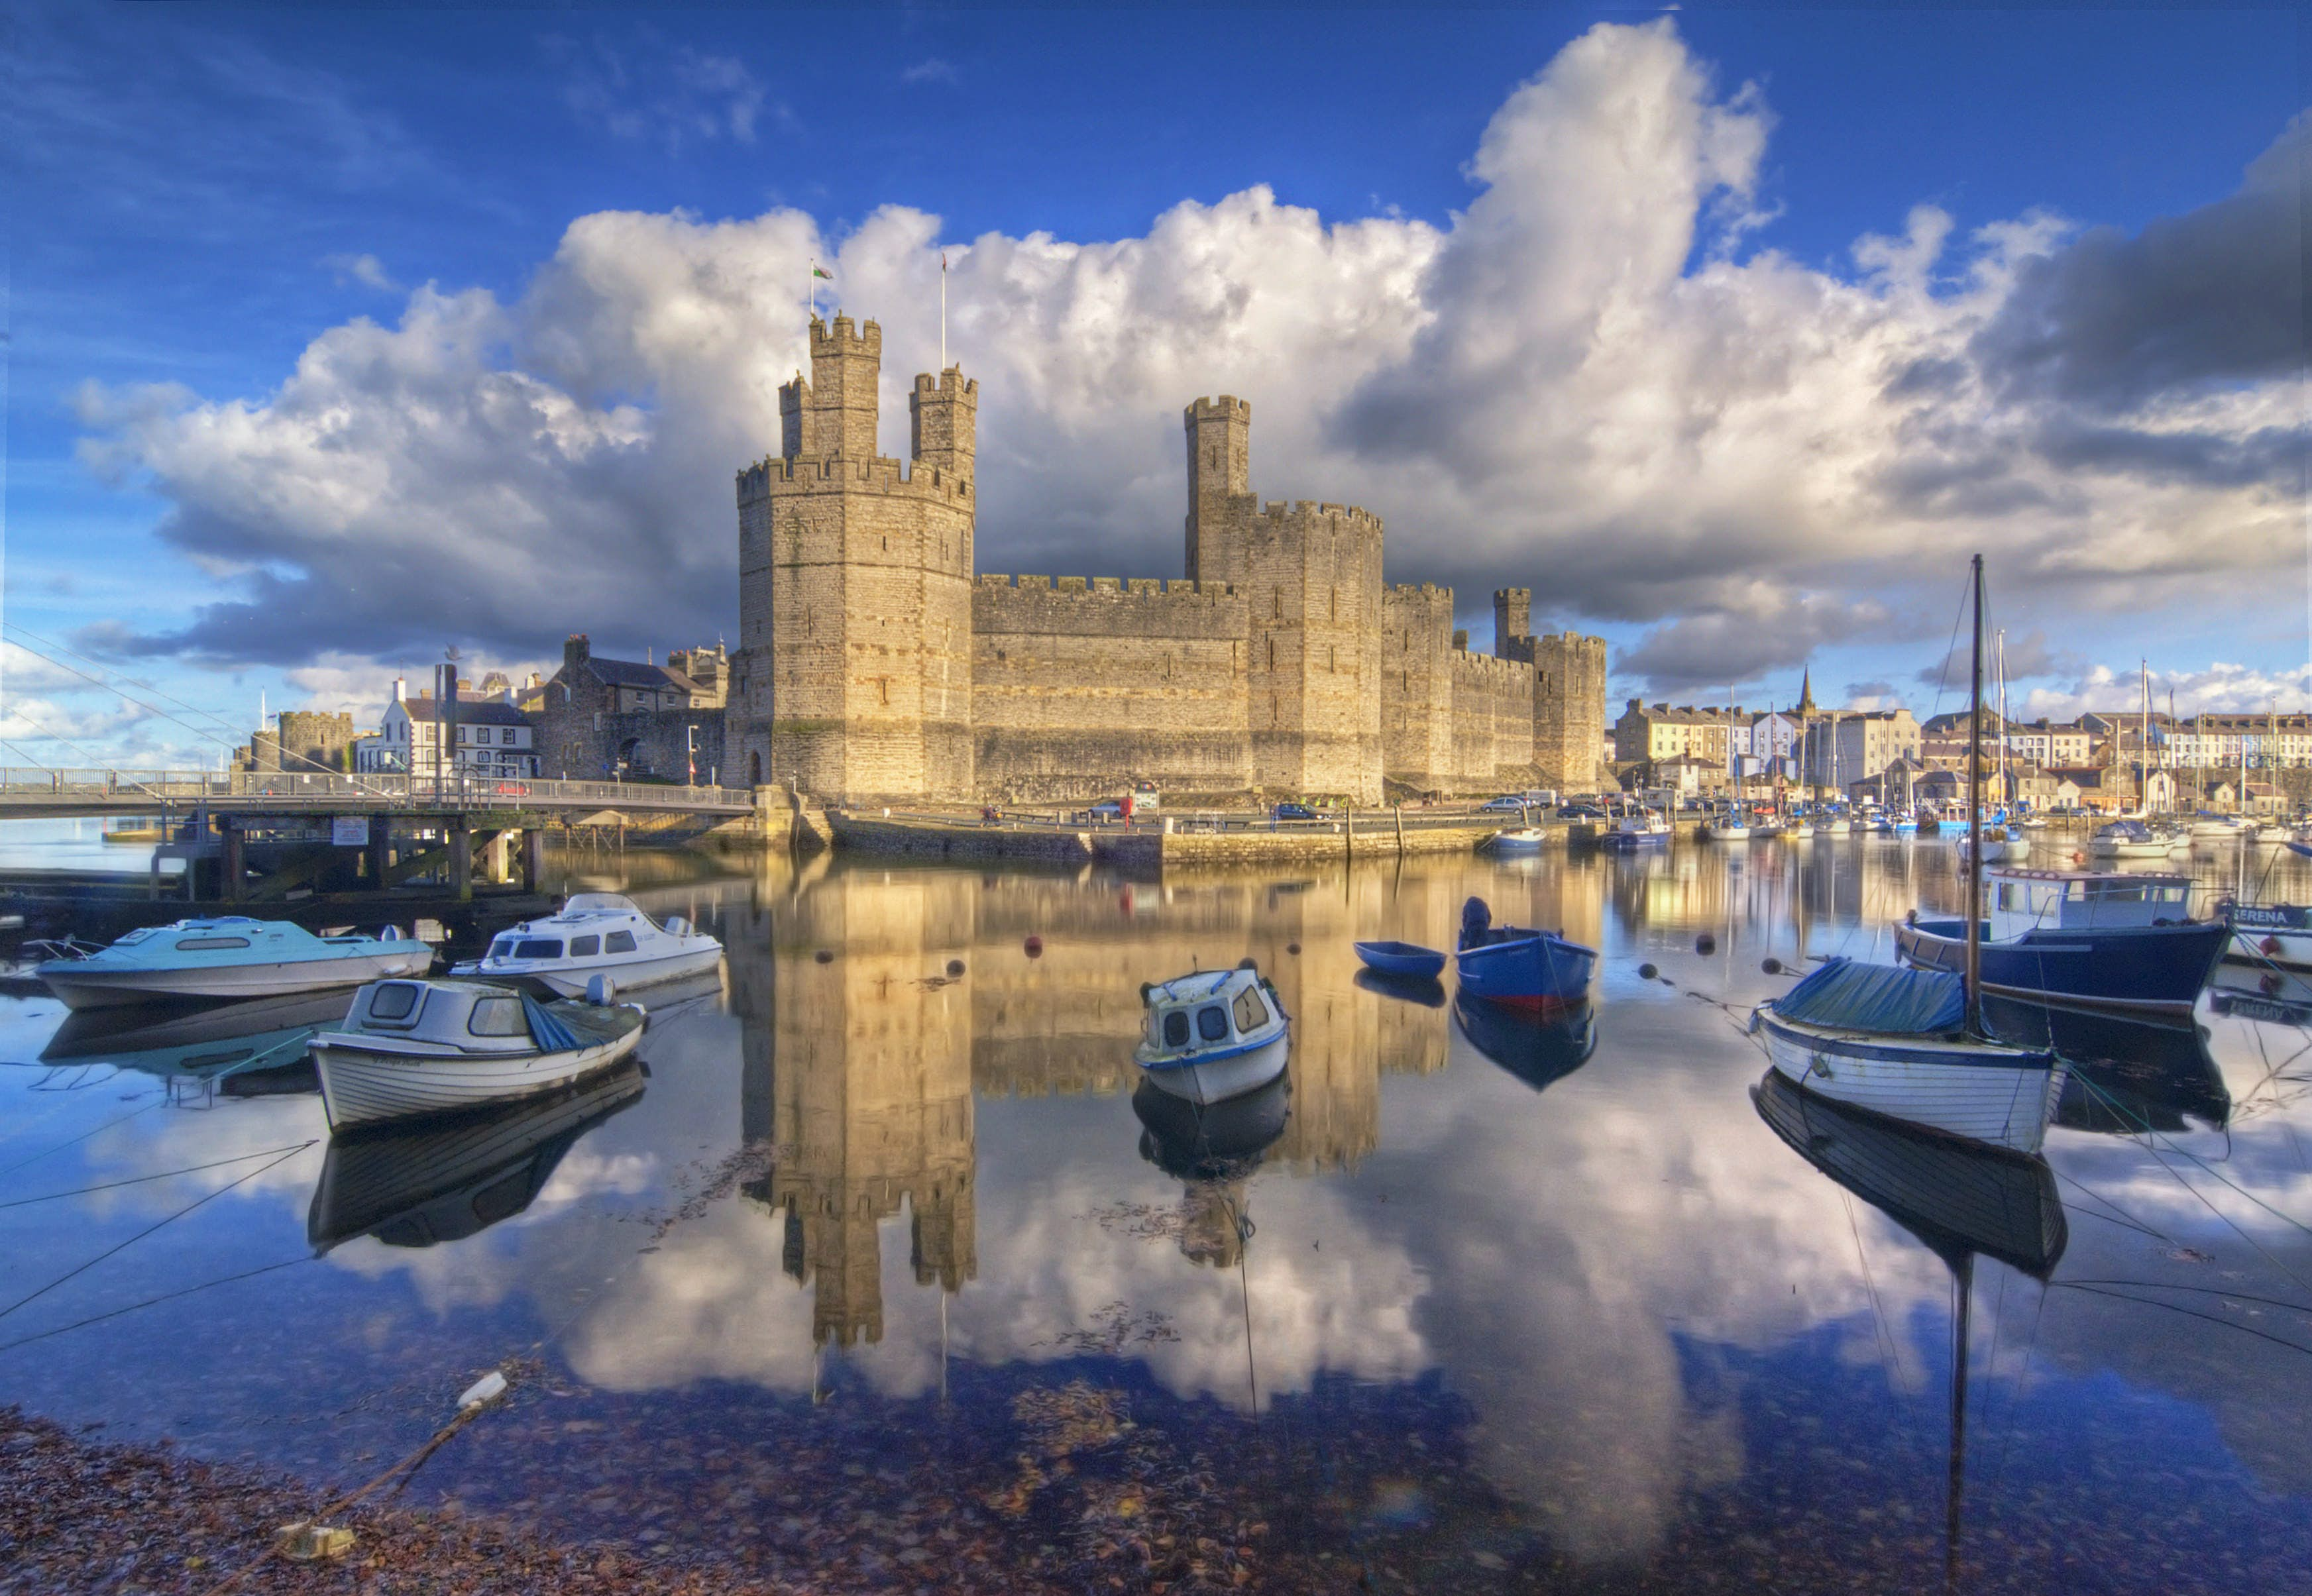 Several small boats sit on the glassy water surrounding Caernarfon Castle in Wales; picturesque waterfront buildings can be seen in the background.